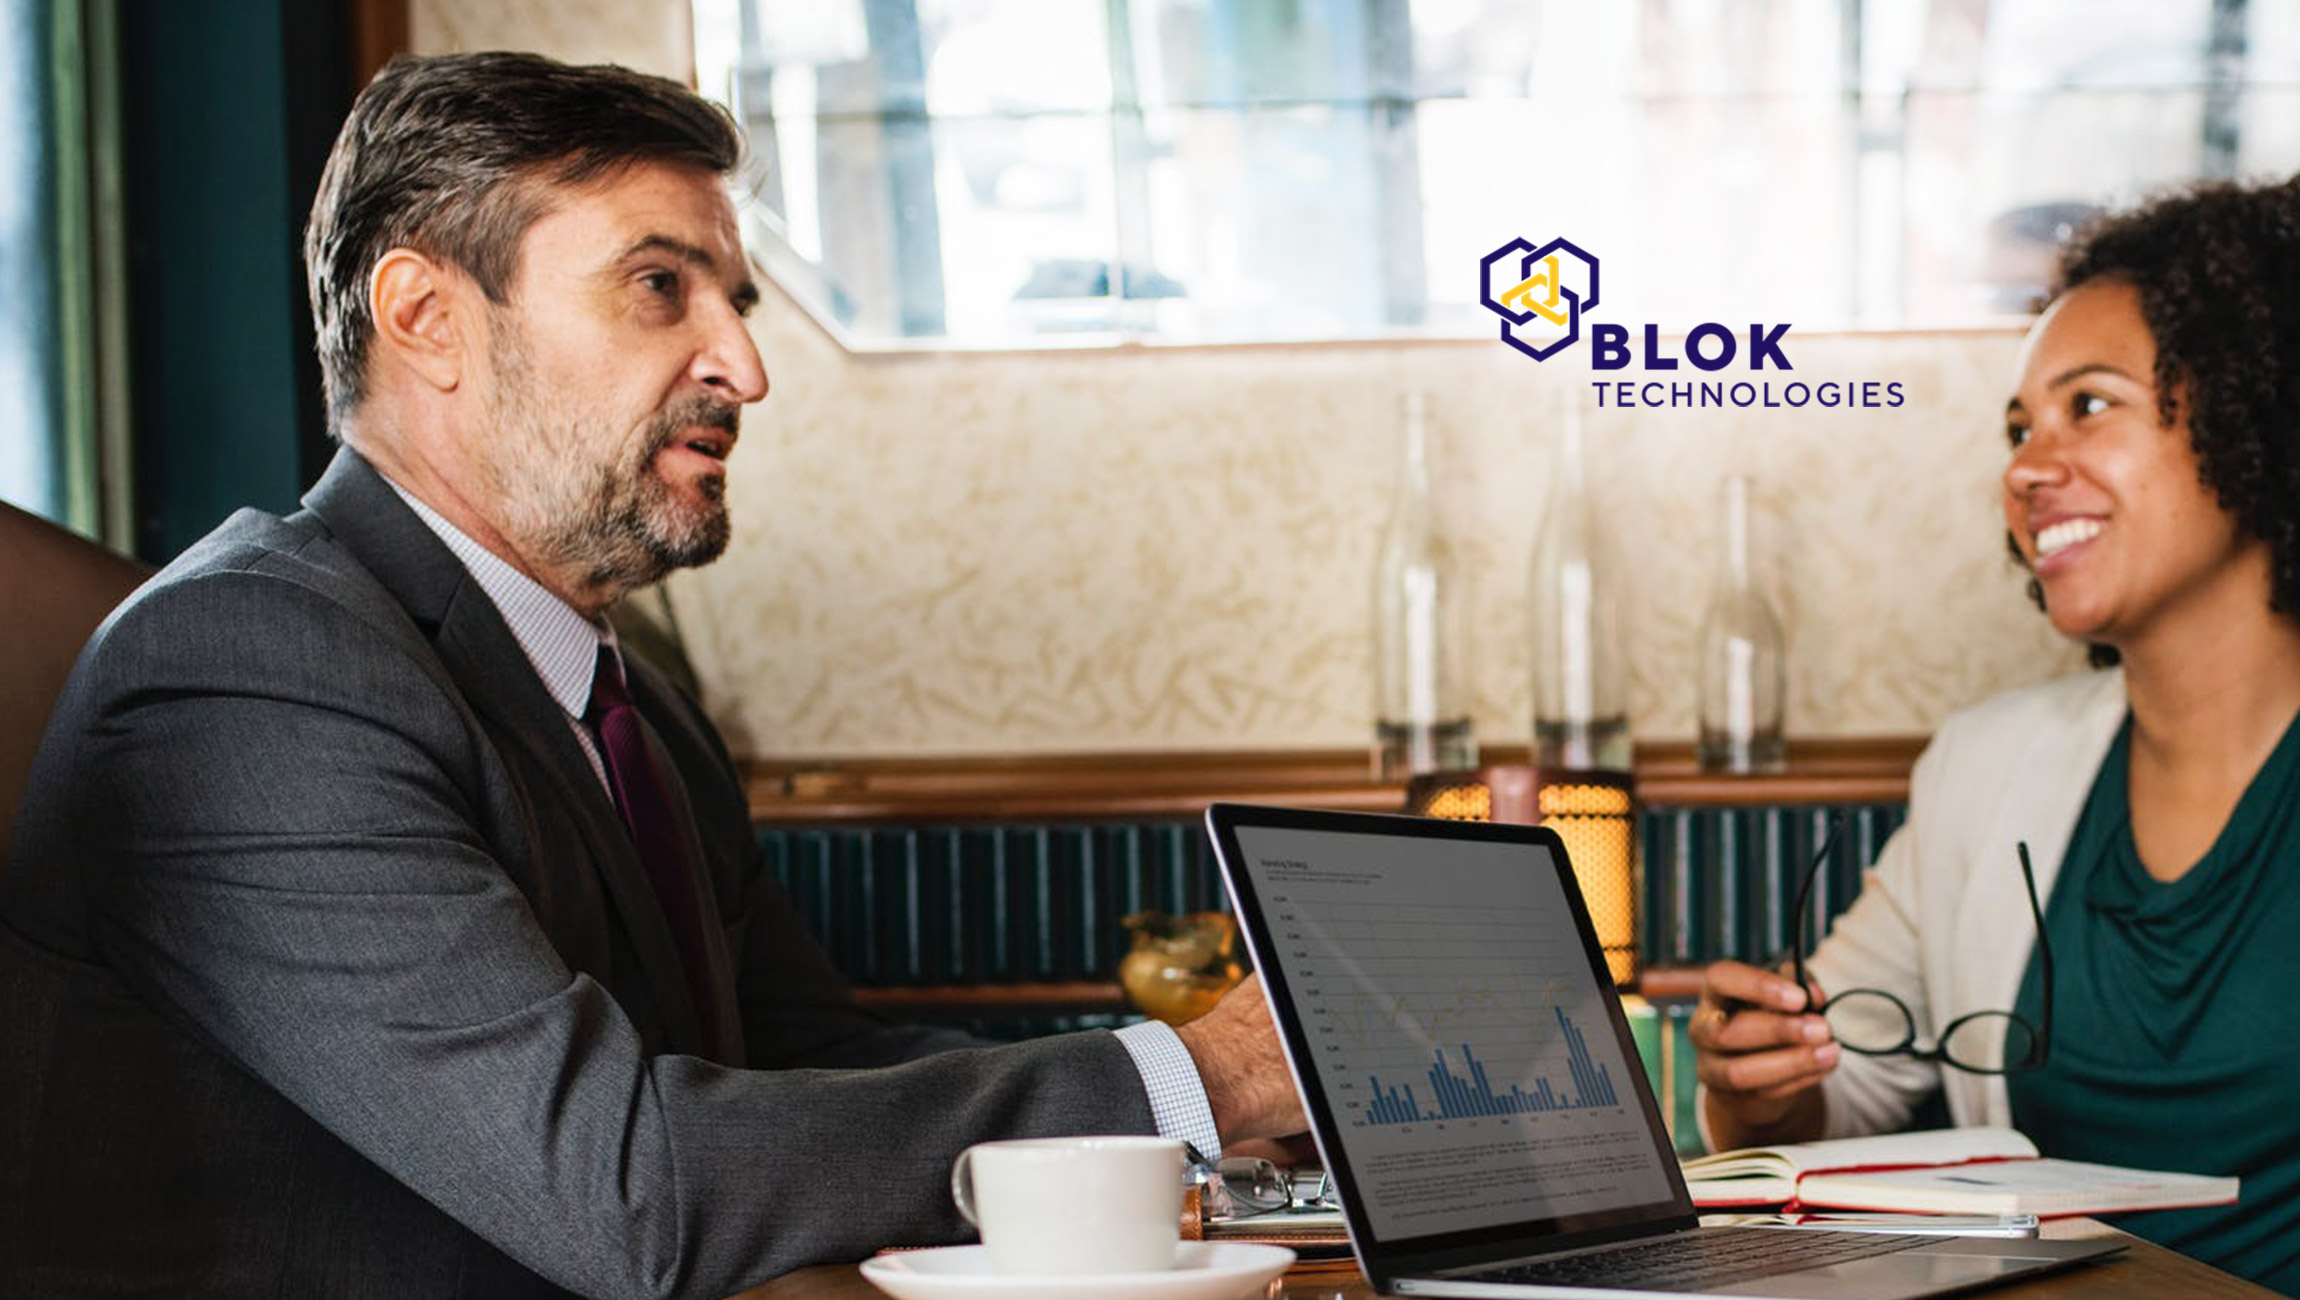 BLOK Technologies Signs Agreement to Acquire Retail CRM Software Platform Businessworx